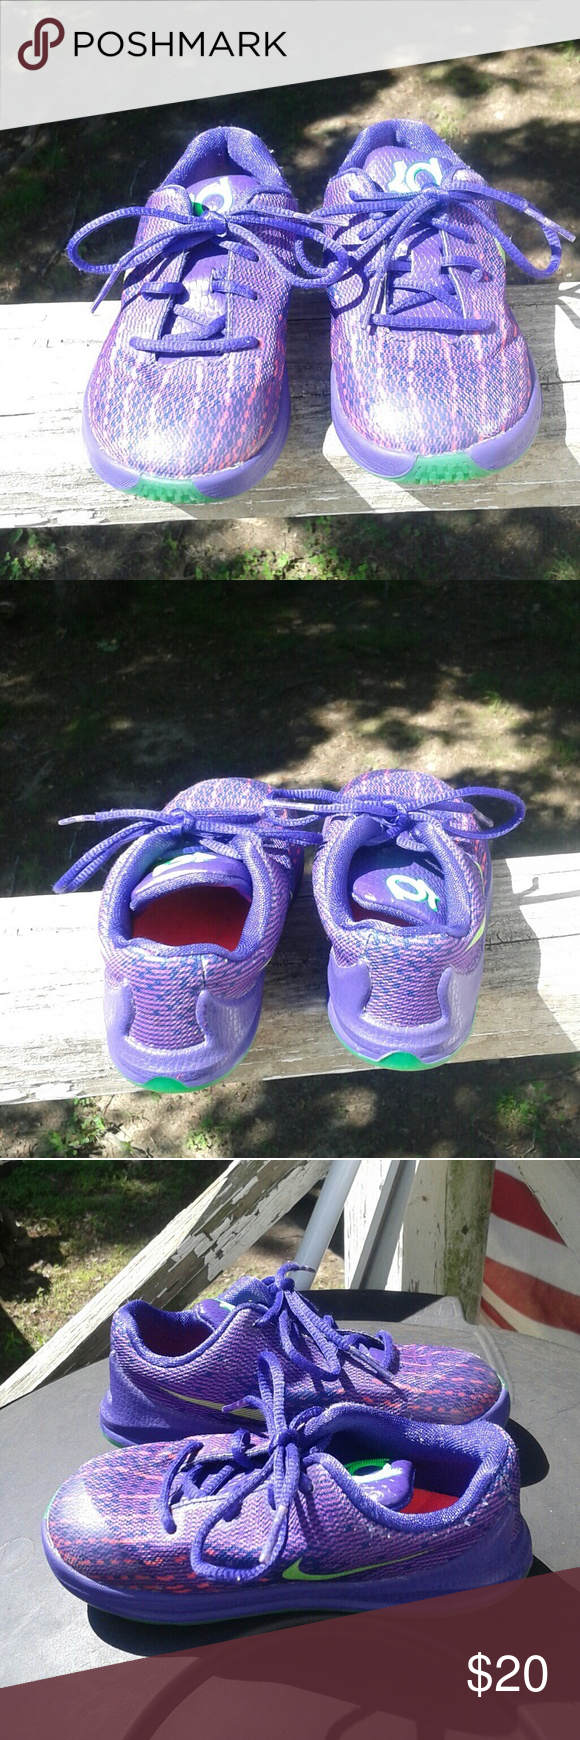 purchase cheap c75f0 bdb17 Nike Kd 8 Shoe's girls size 8c ( toddler ) This is a used ...